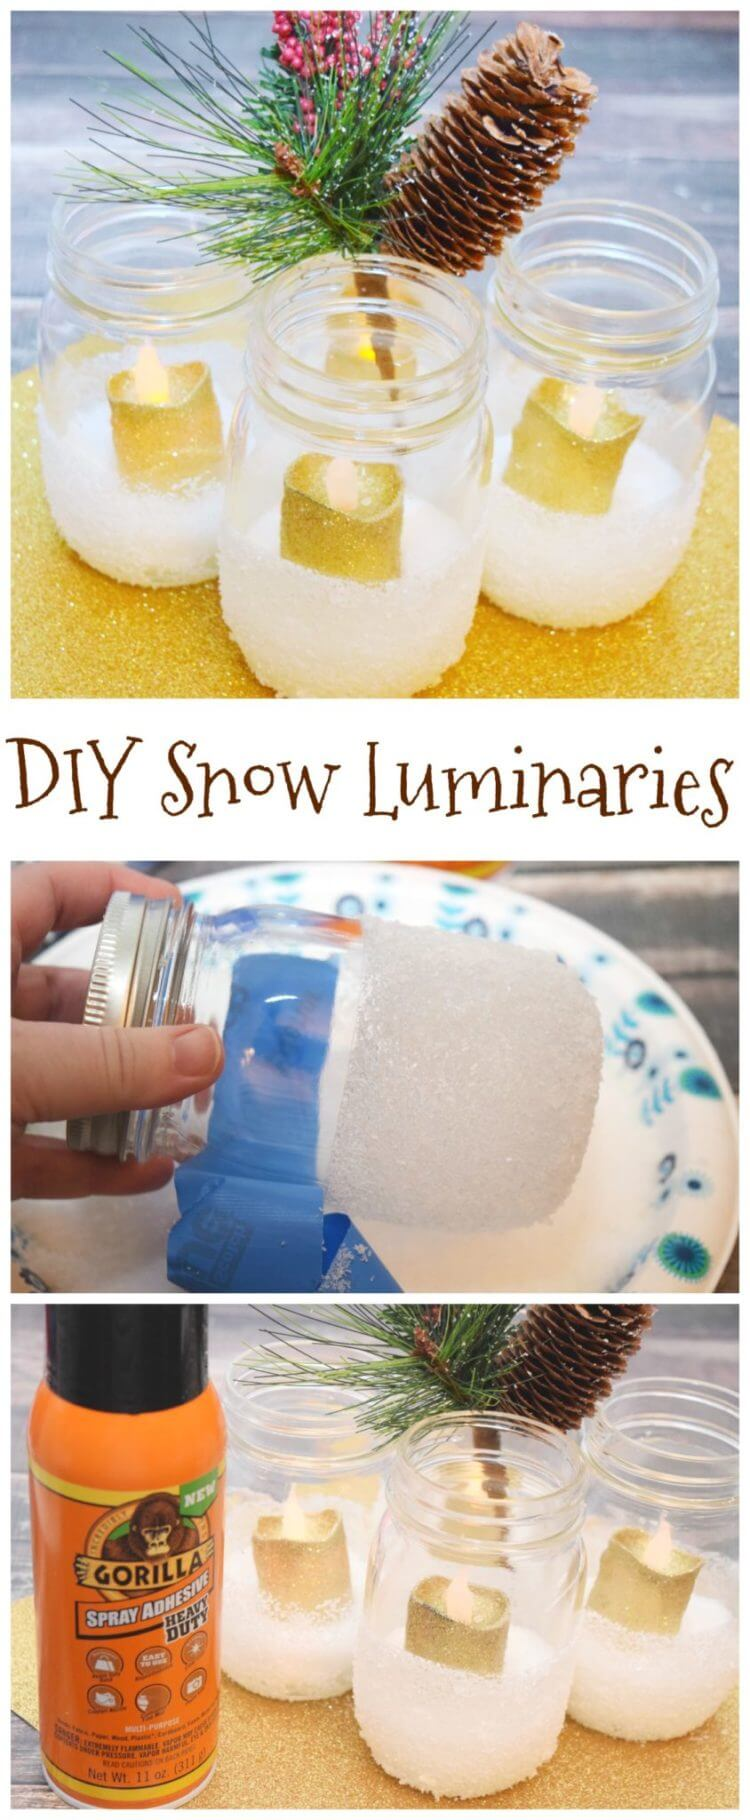 Make DIY Snow Luminaries for your holiday table or mantle! #ad #GorillaTough @GorillaGlue